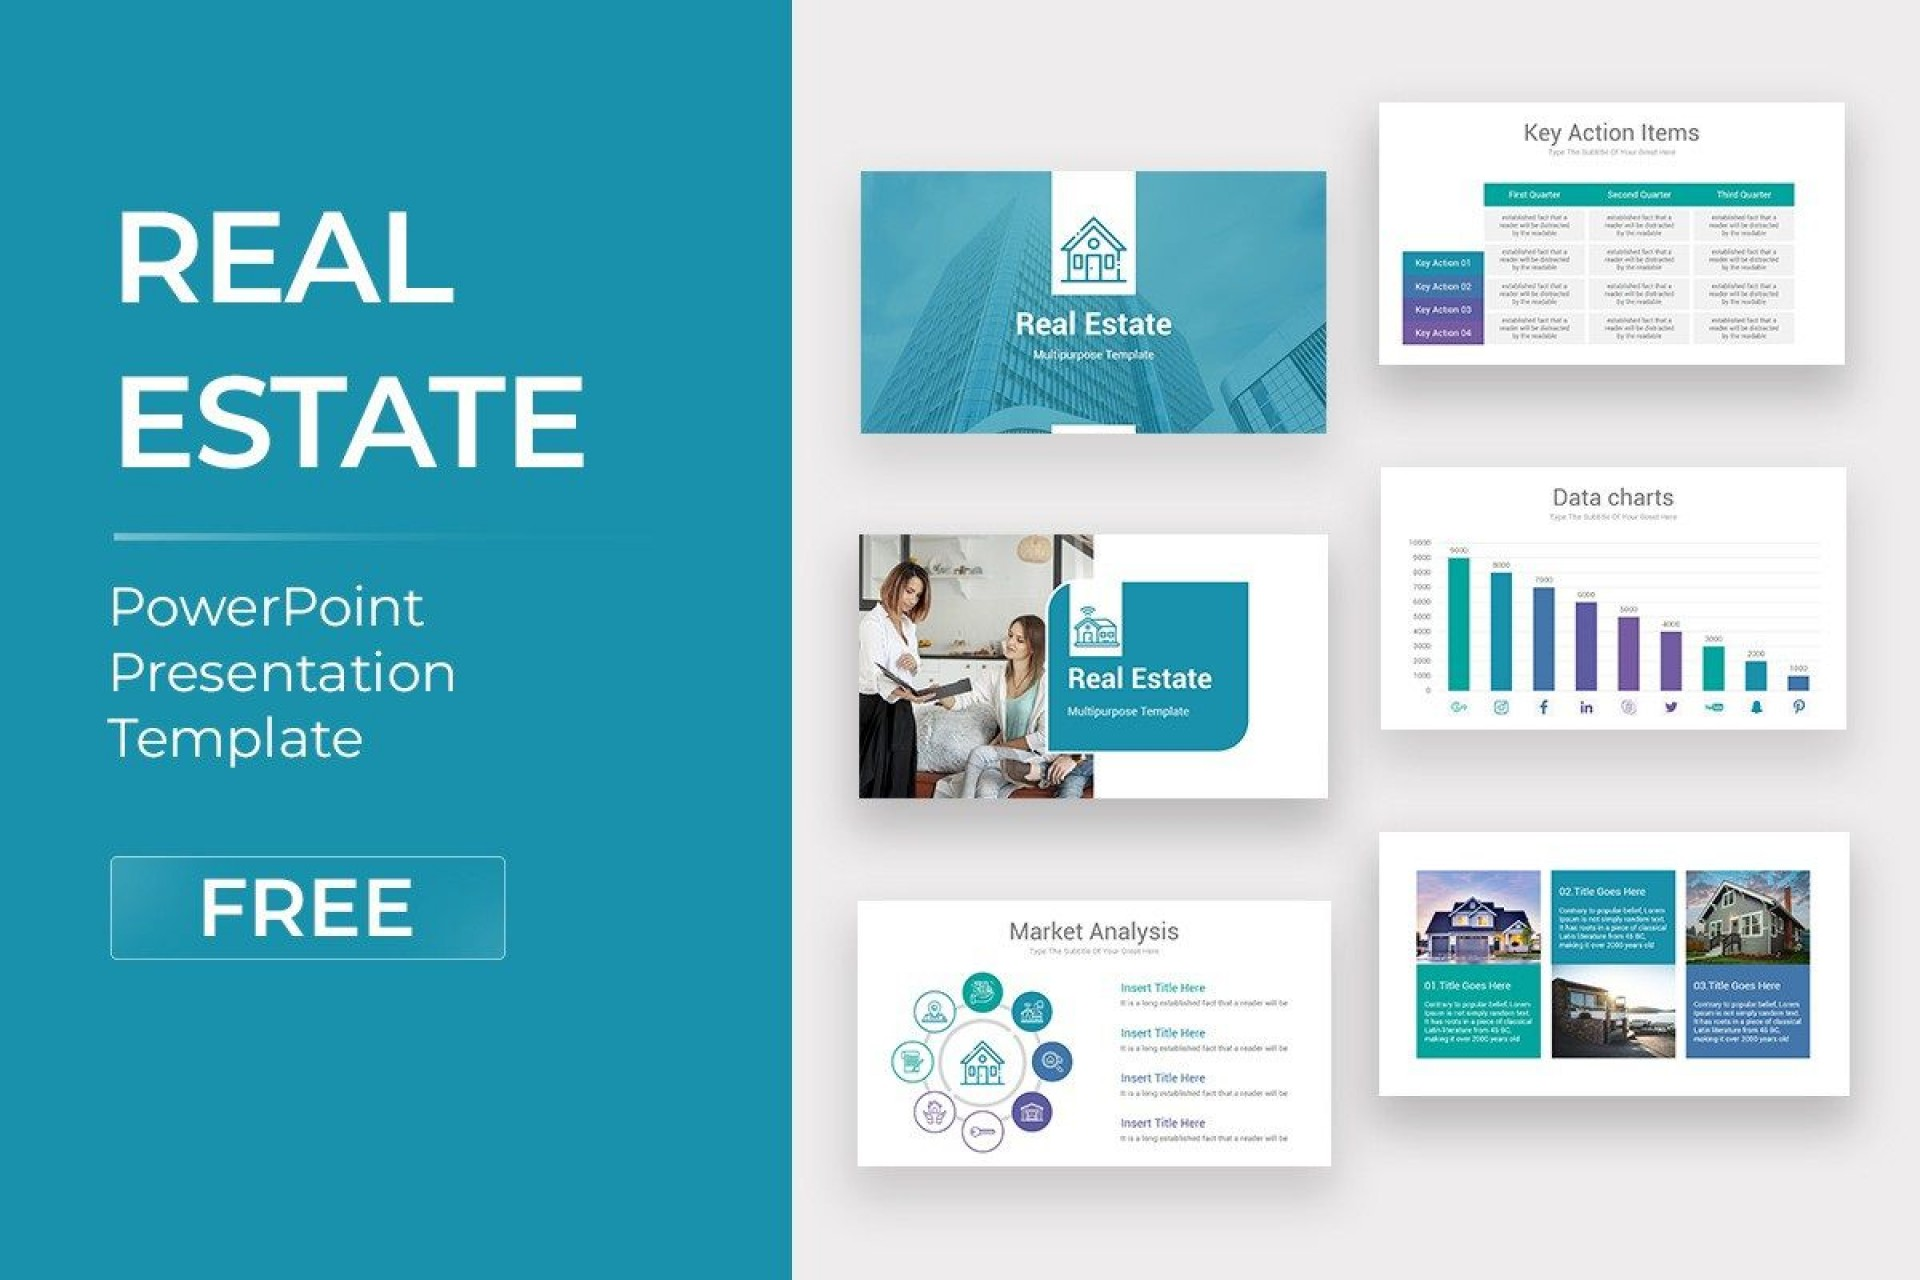 008 Awful Ppt Template Free Download Image  Powerpoint 2020 Microsoft History 20181920